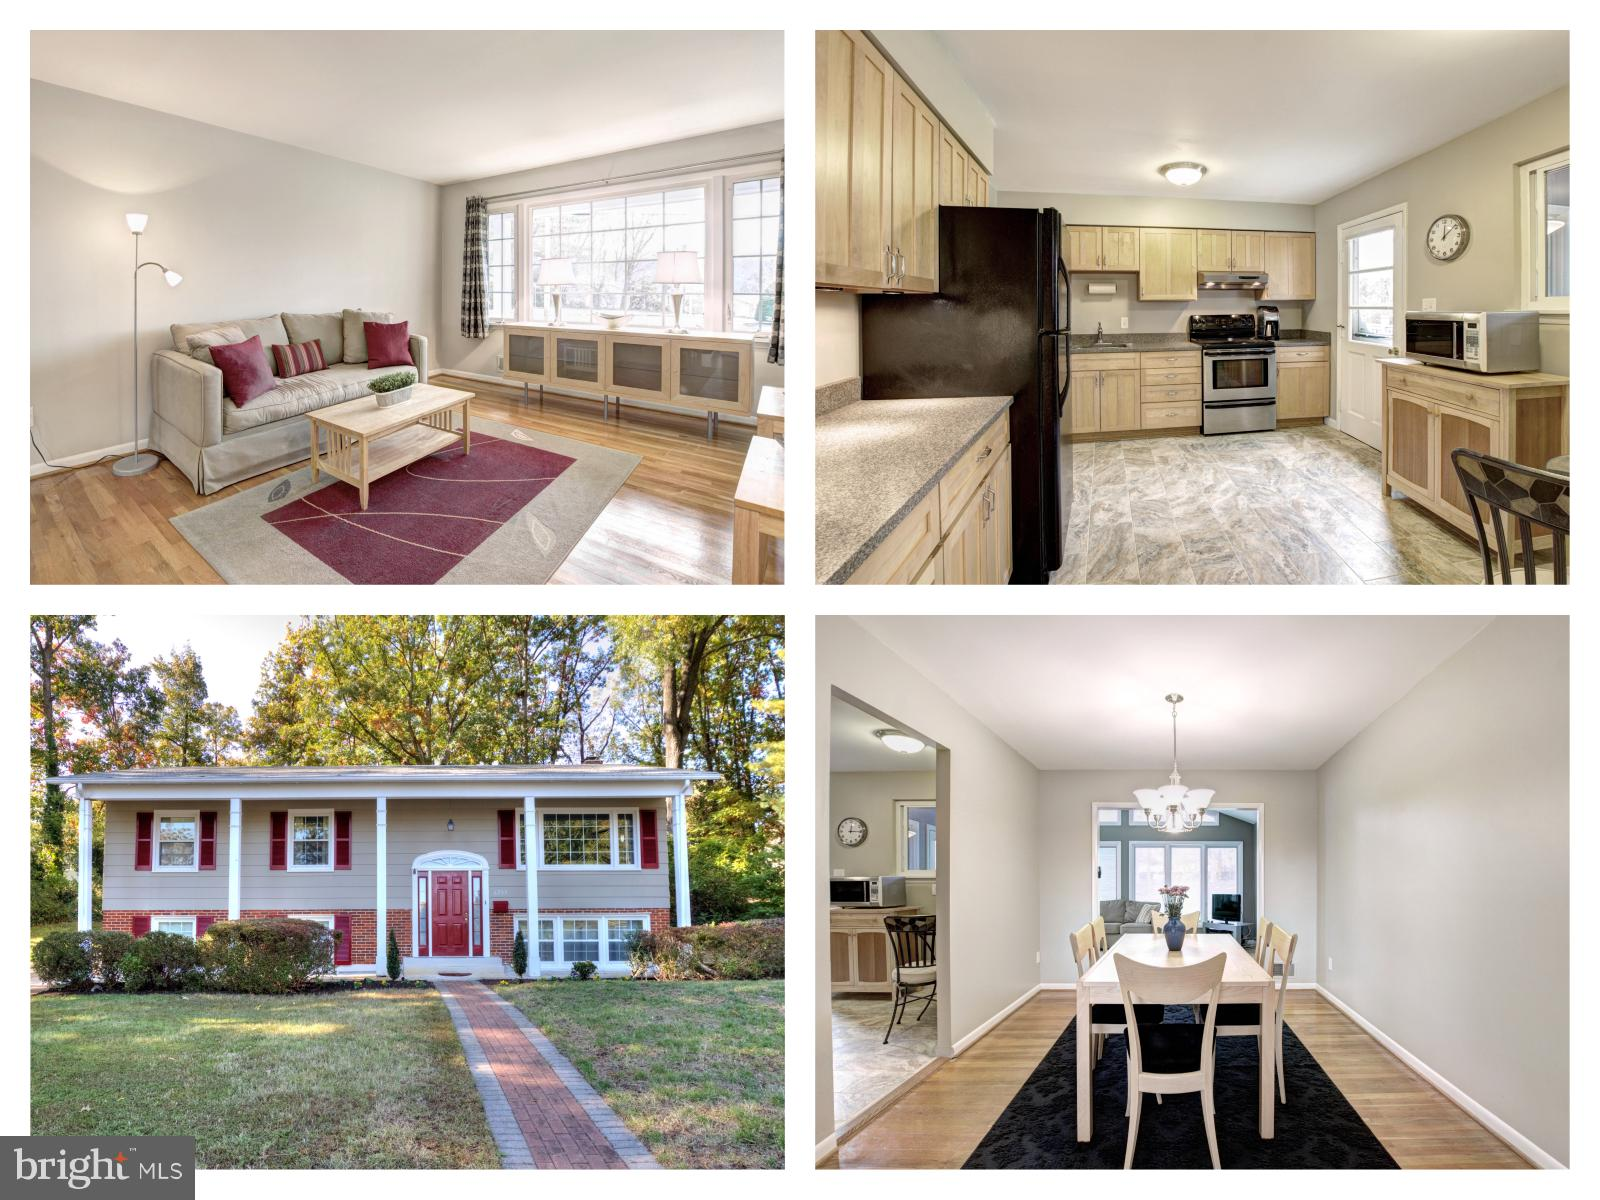 Spotless 5 bed 3 bath split foyer in the established Rose Hill neighborhood.  Beautiful hardwoods throughout main floor and a smartly designed kitchen.  Bright sun room addition with vaulted ceilings. Gorgeous curb appeal and serene backyard enjoyed from Trex deck. Brand new furnace.  Spacious LL family room with wood burning fireplace.  Additional bed and bath on lower level make the perfect in-law suite.  Minutes from I495 and commuter routes, this home is a smart choice!